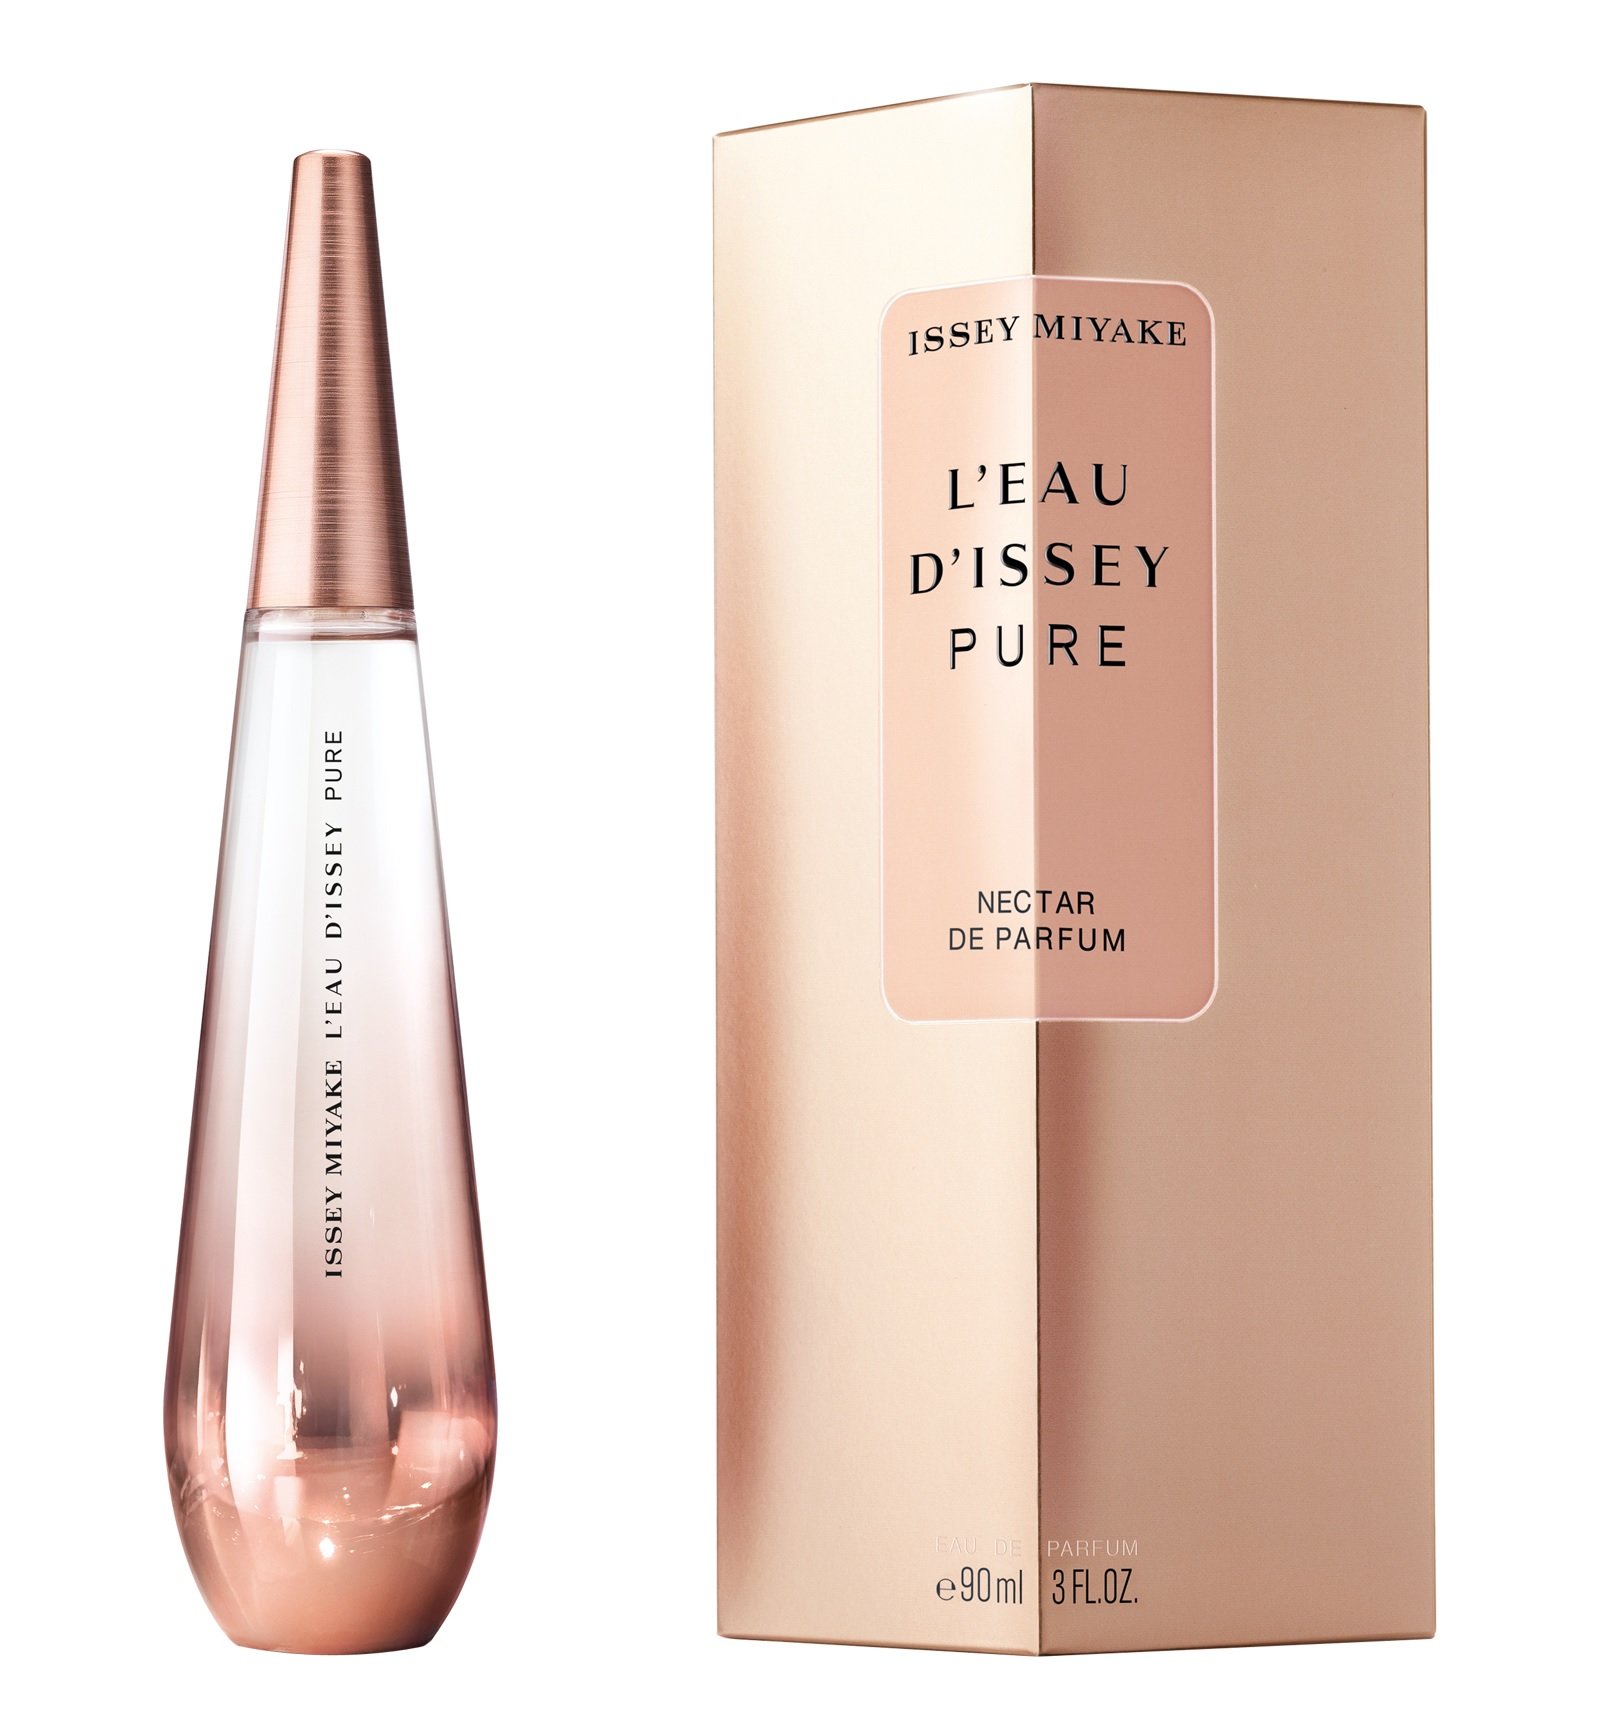 Leau Dissey Pure Nectar De Parfum Issey Miyake Perfume A New